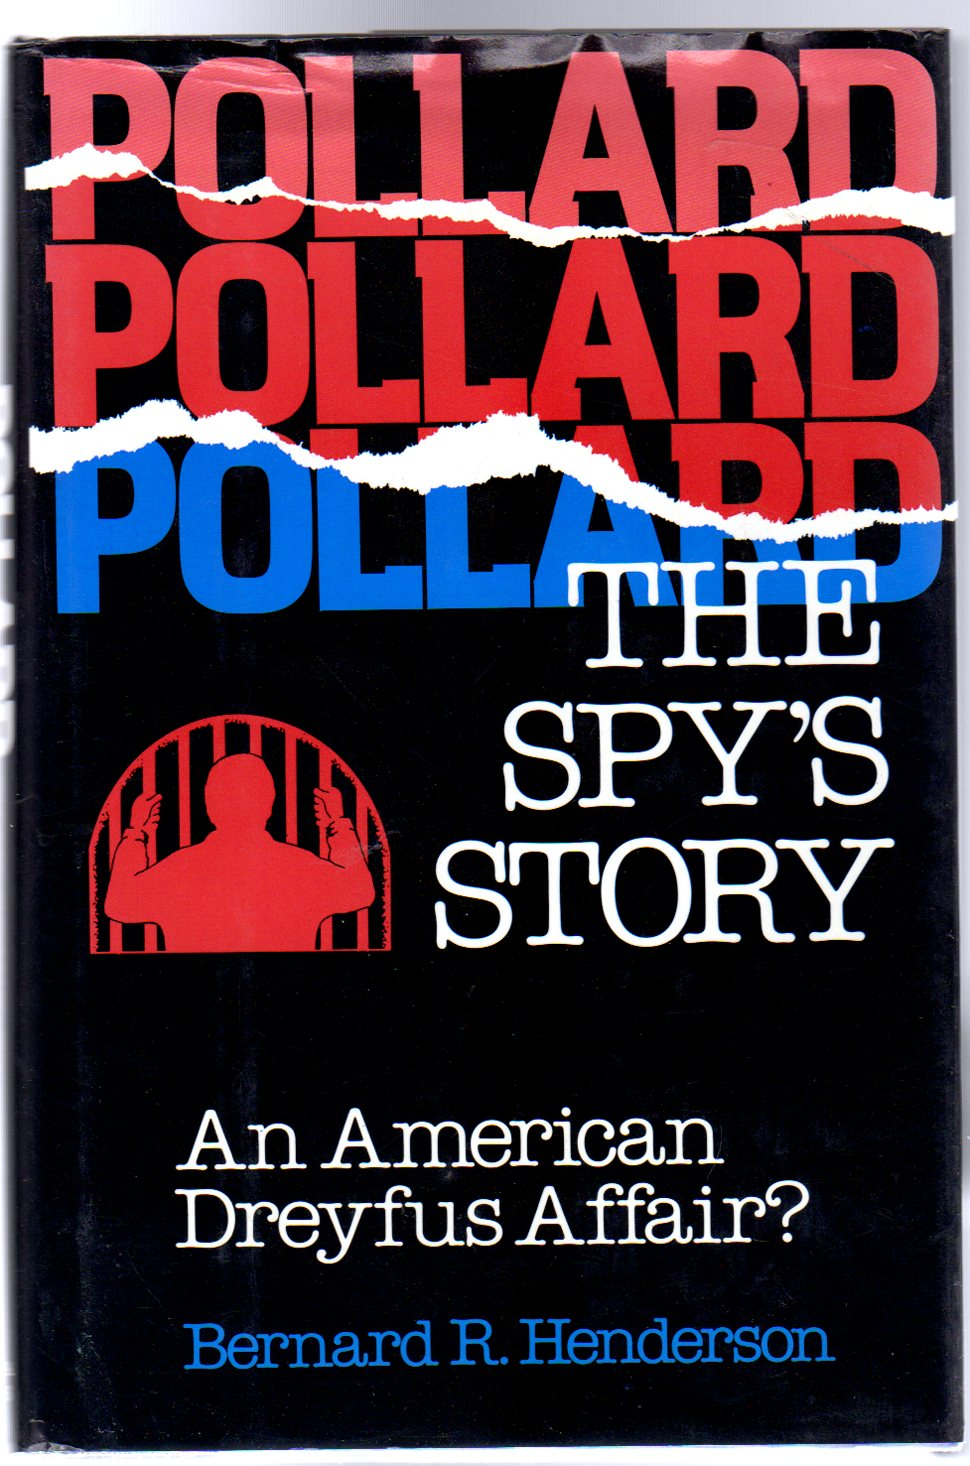 Image for Pollard : The Spy's Story